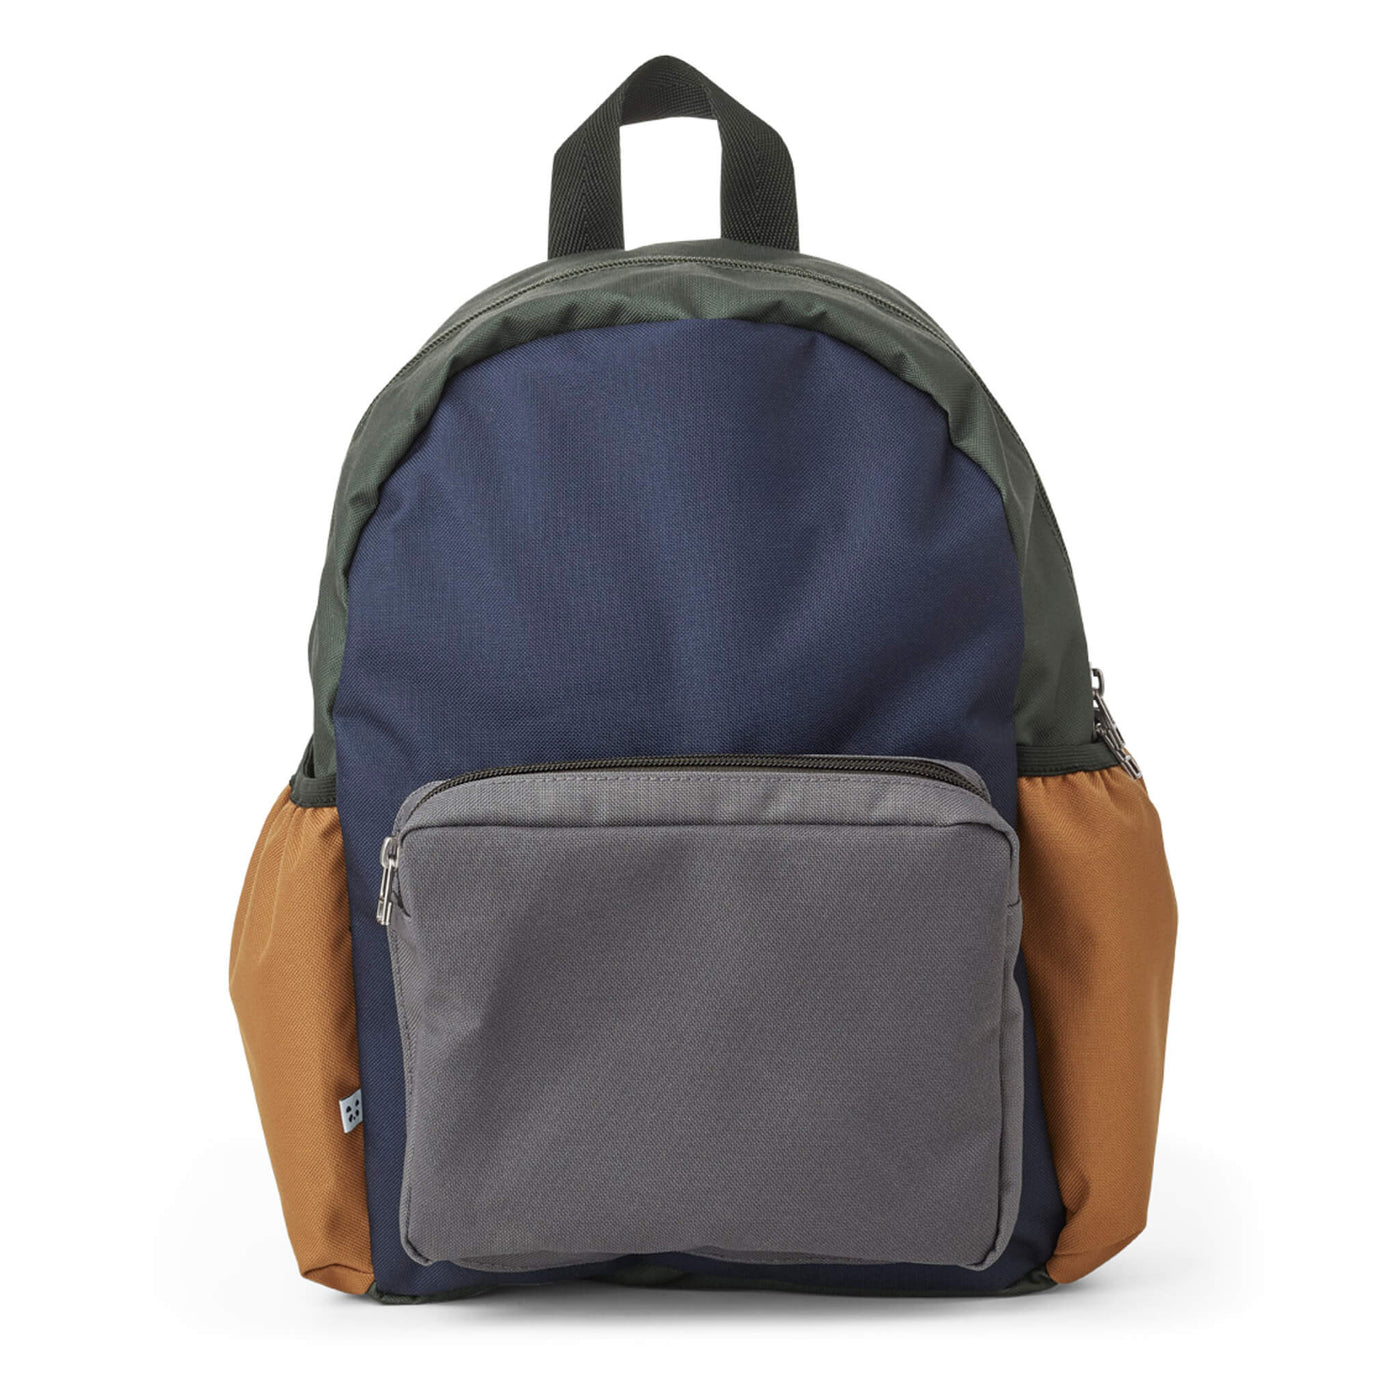 Wally Backpack - Navy Multi Mix